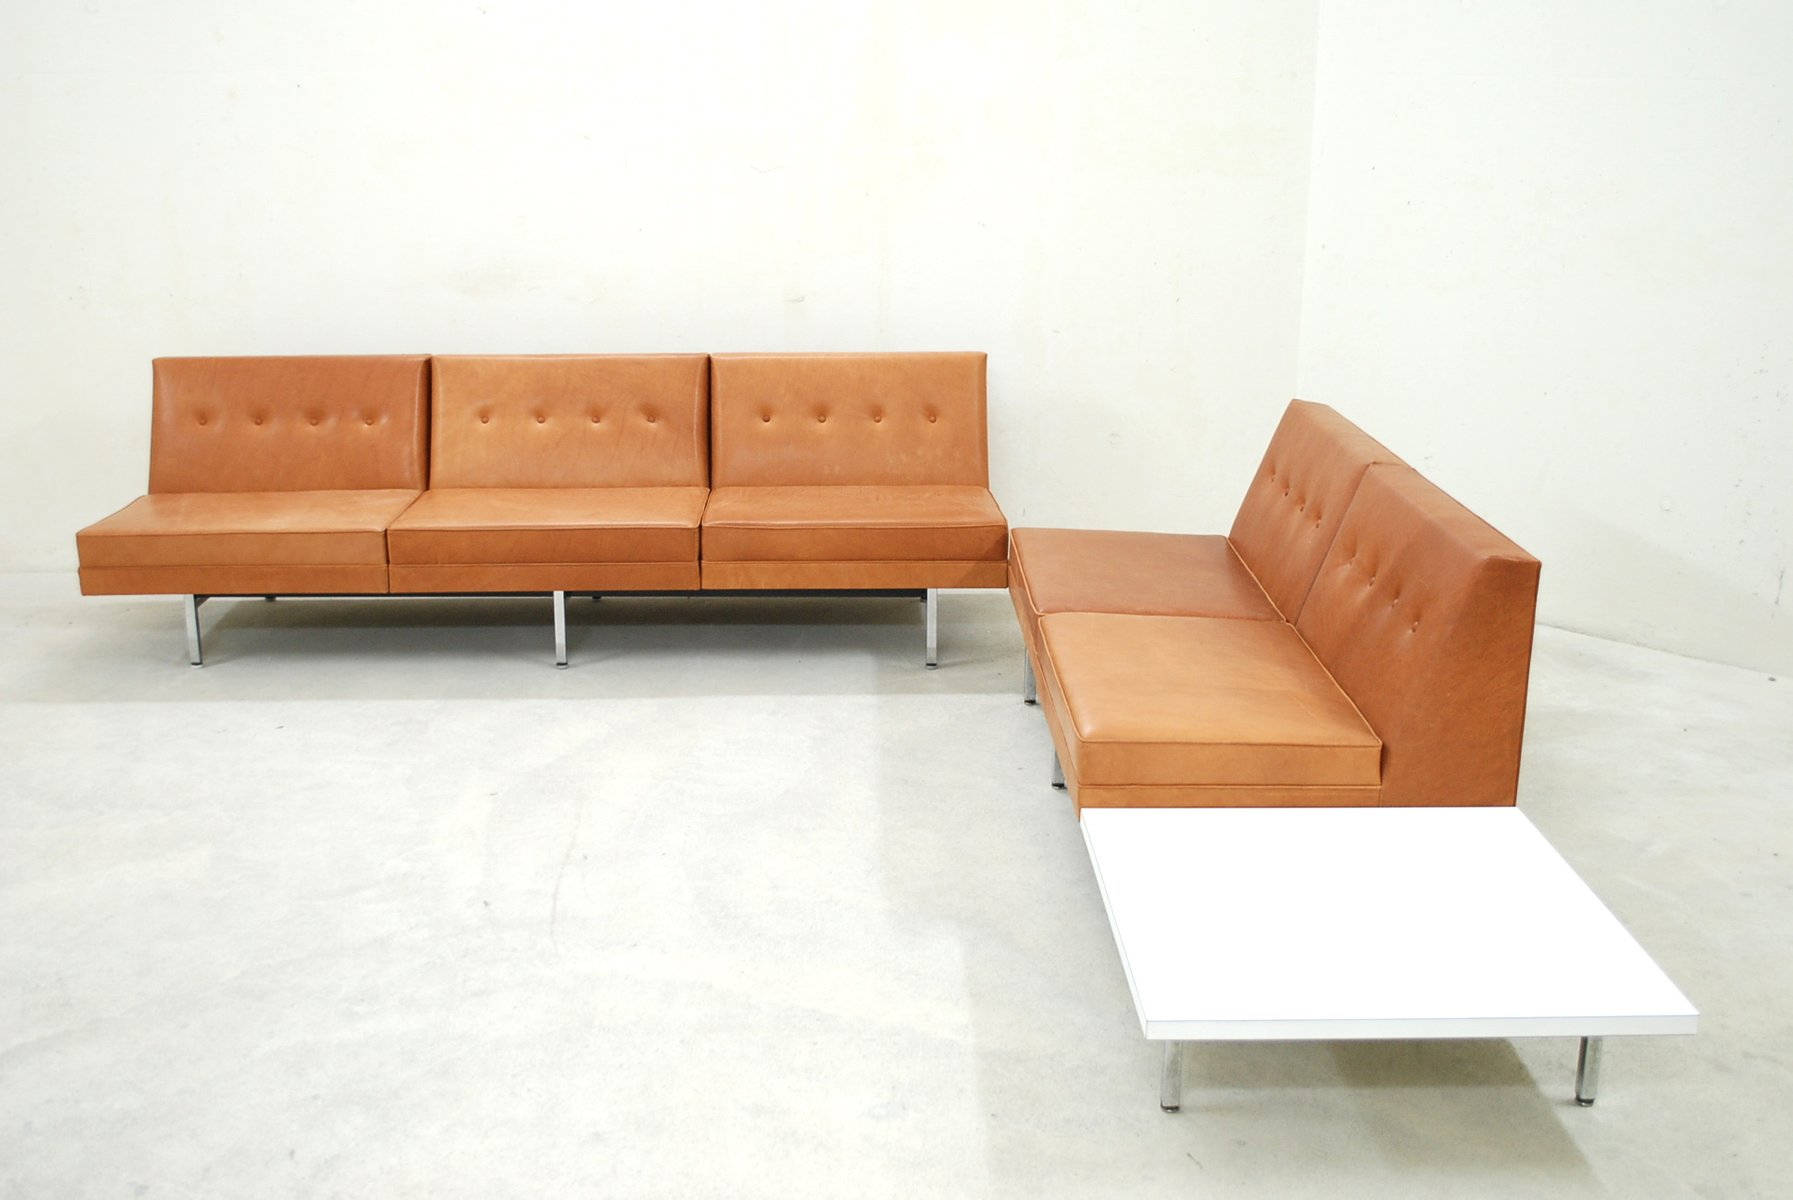 herman miller modular sofa deep leather sofas uk cognac set by george nelson for